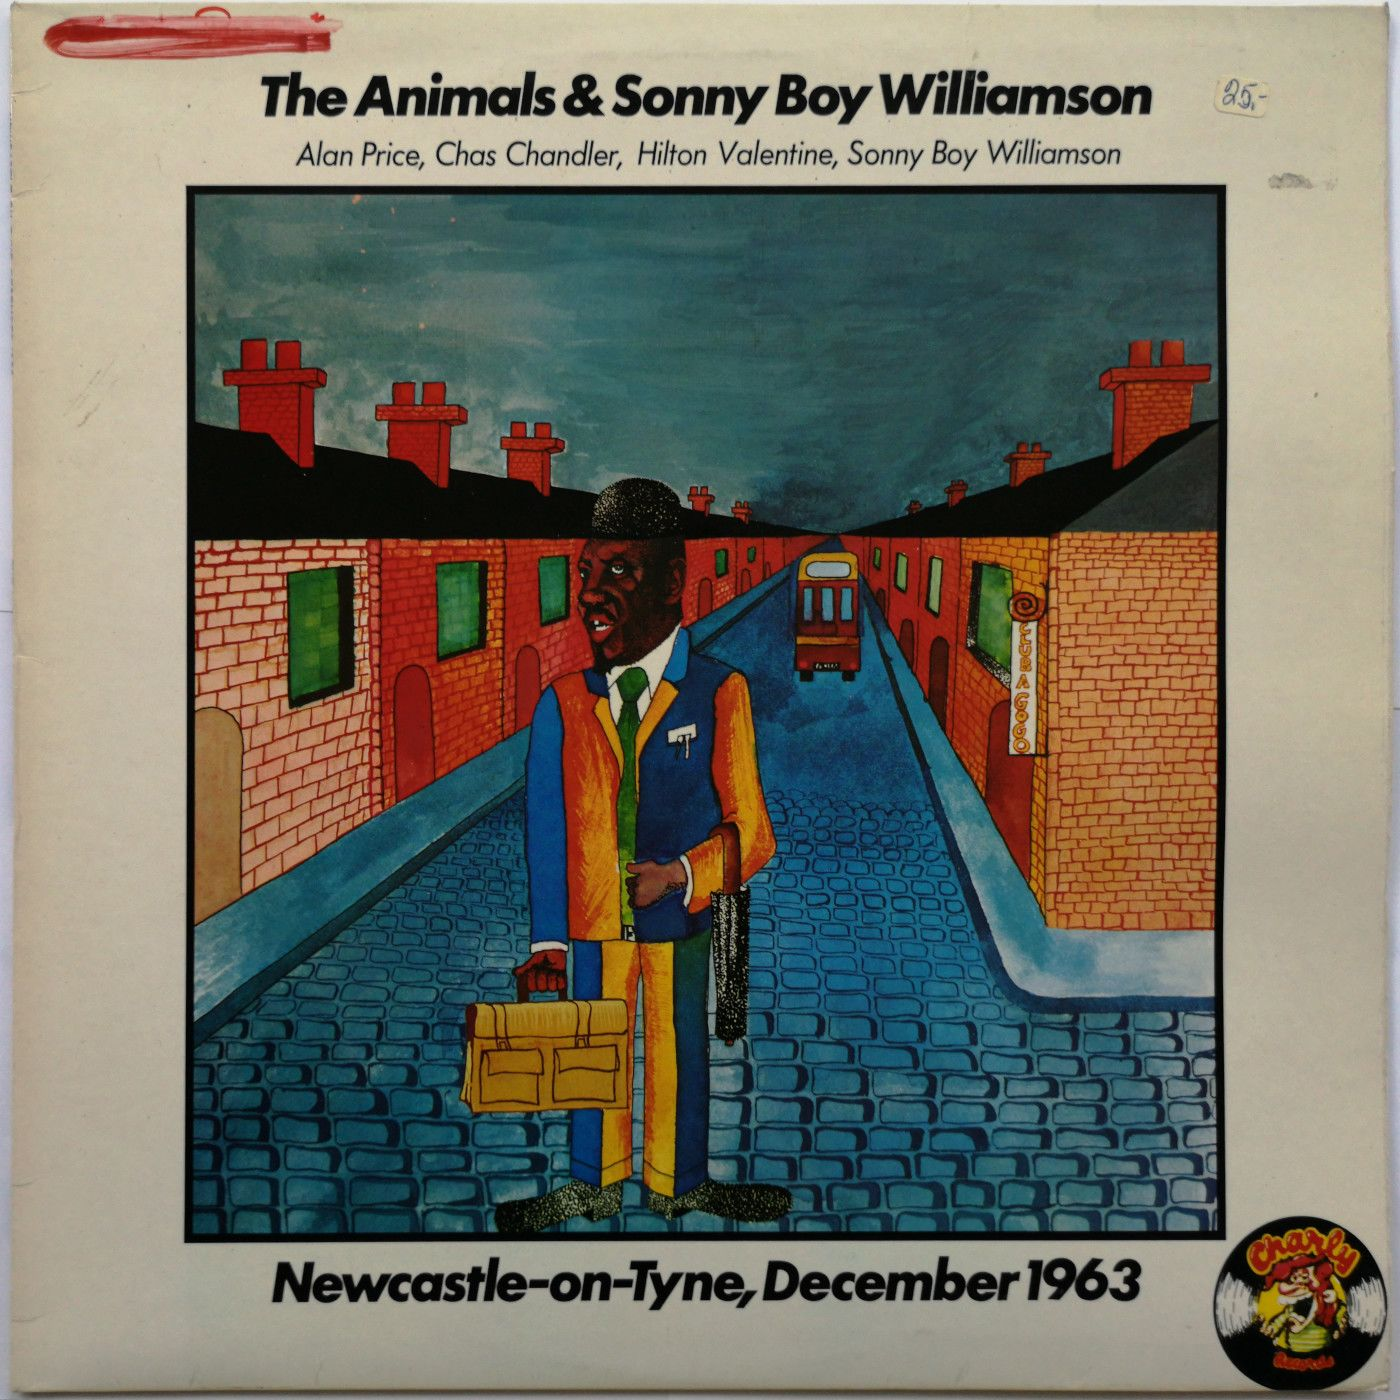 The Animals & Sonny Boy Williamson Newcastle-on-Tyne, December 1963 LP undefined